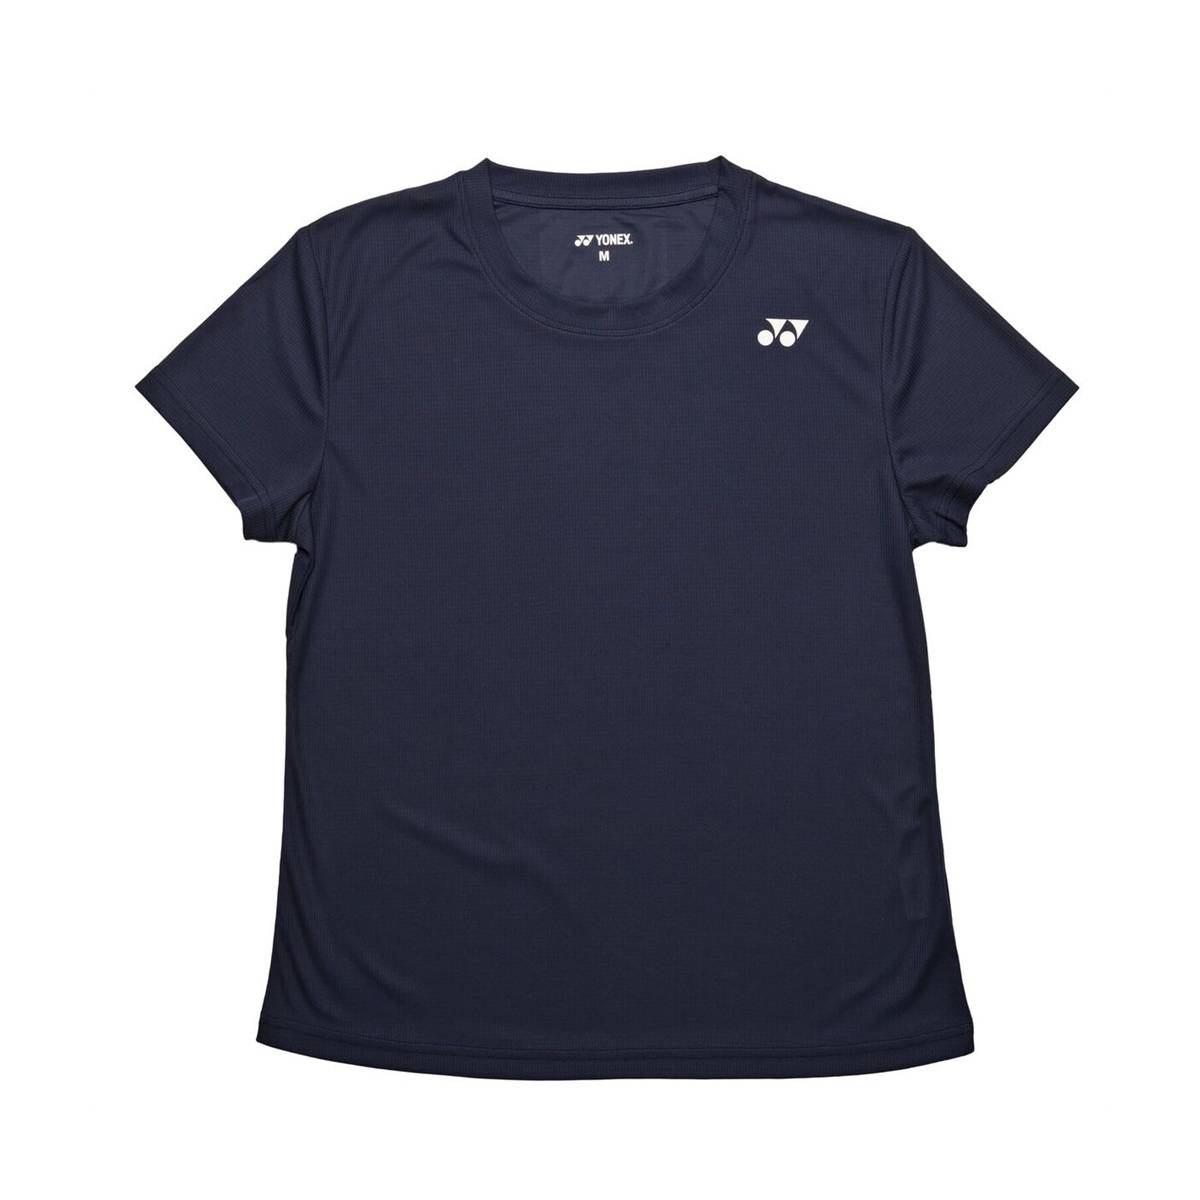 Yonex Mia Girls Shirt Navy 8-10 years